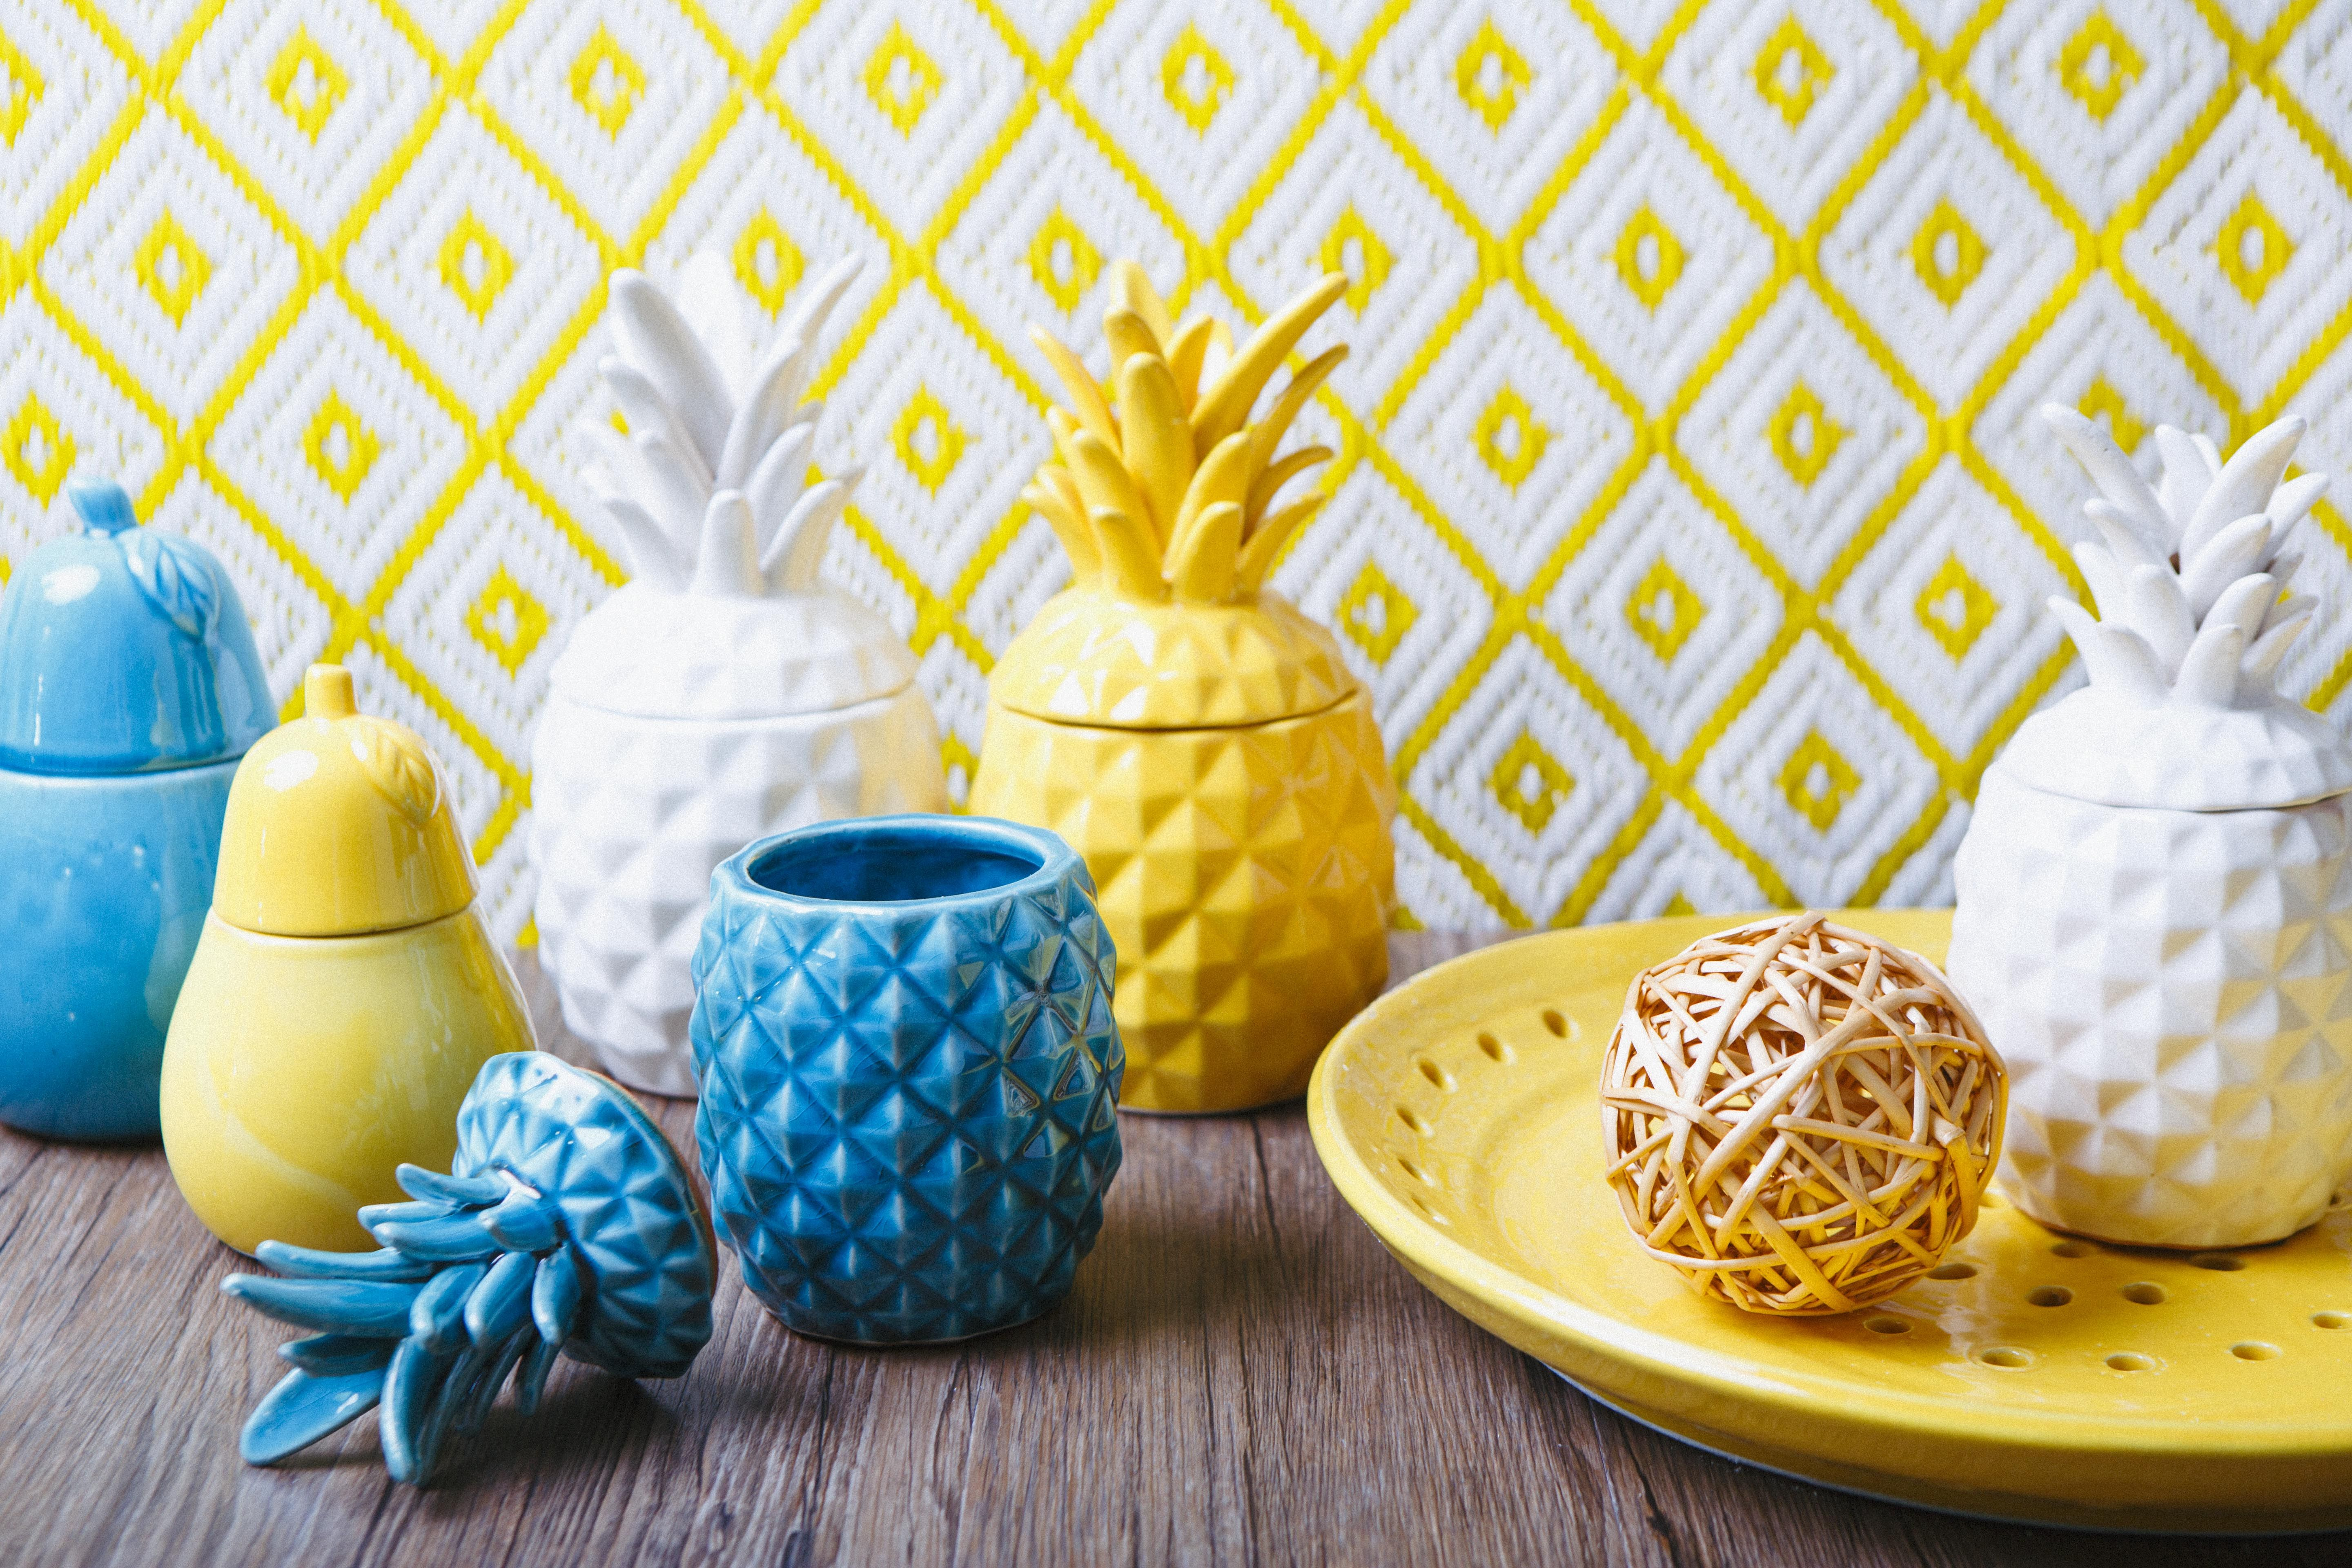 Ceramic Pineapples - The Home